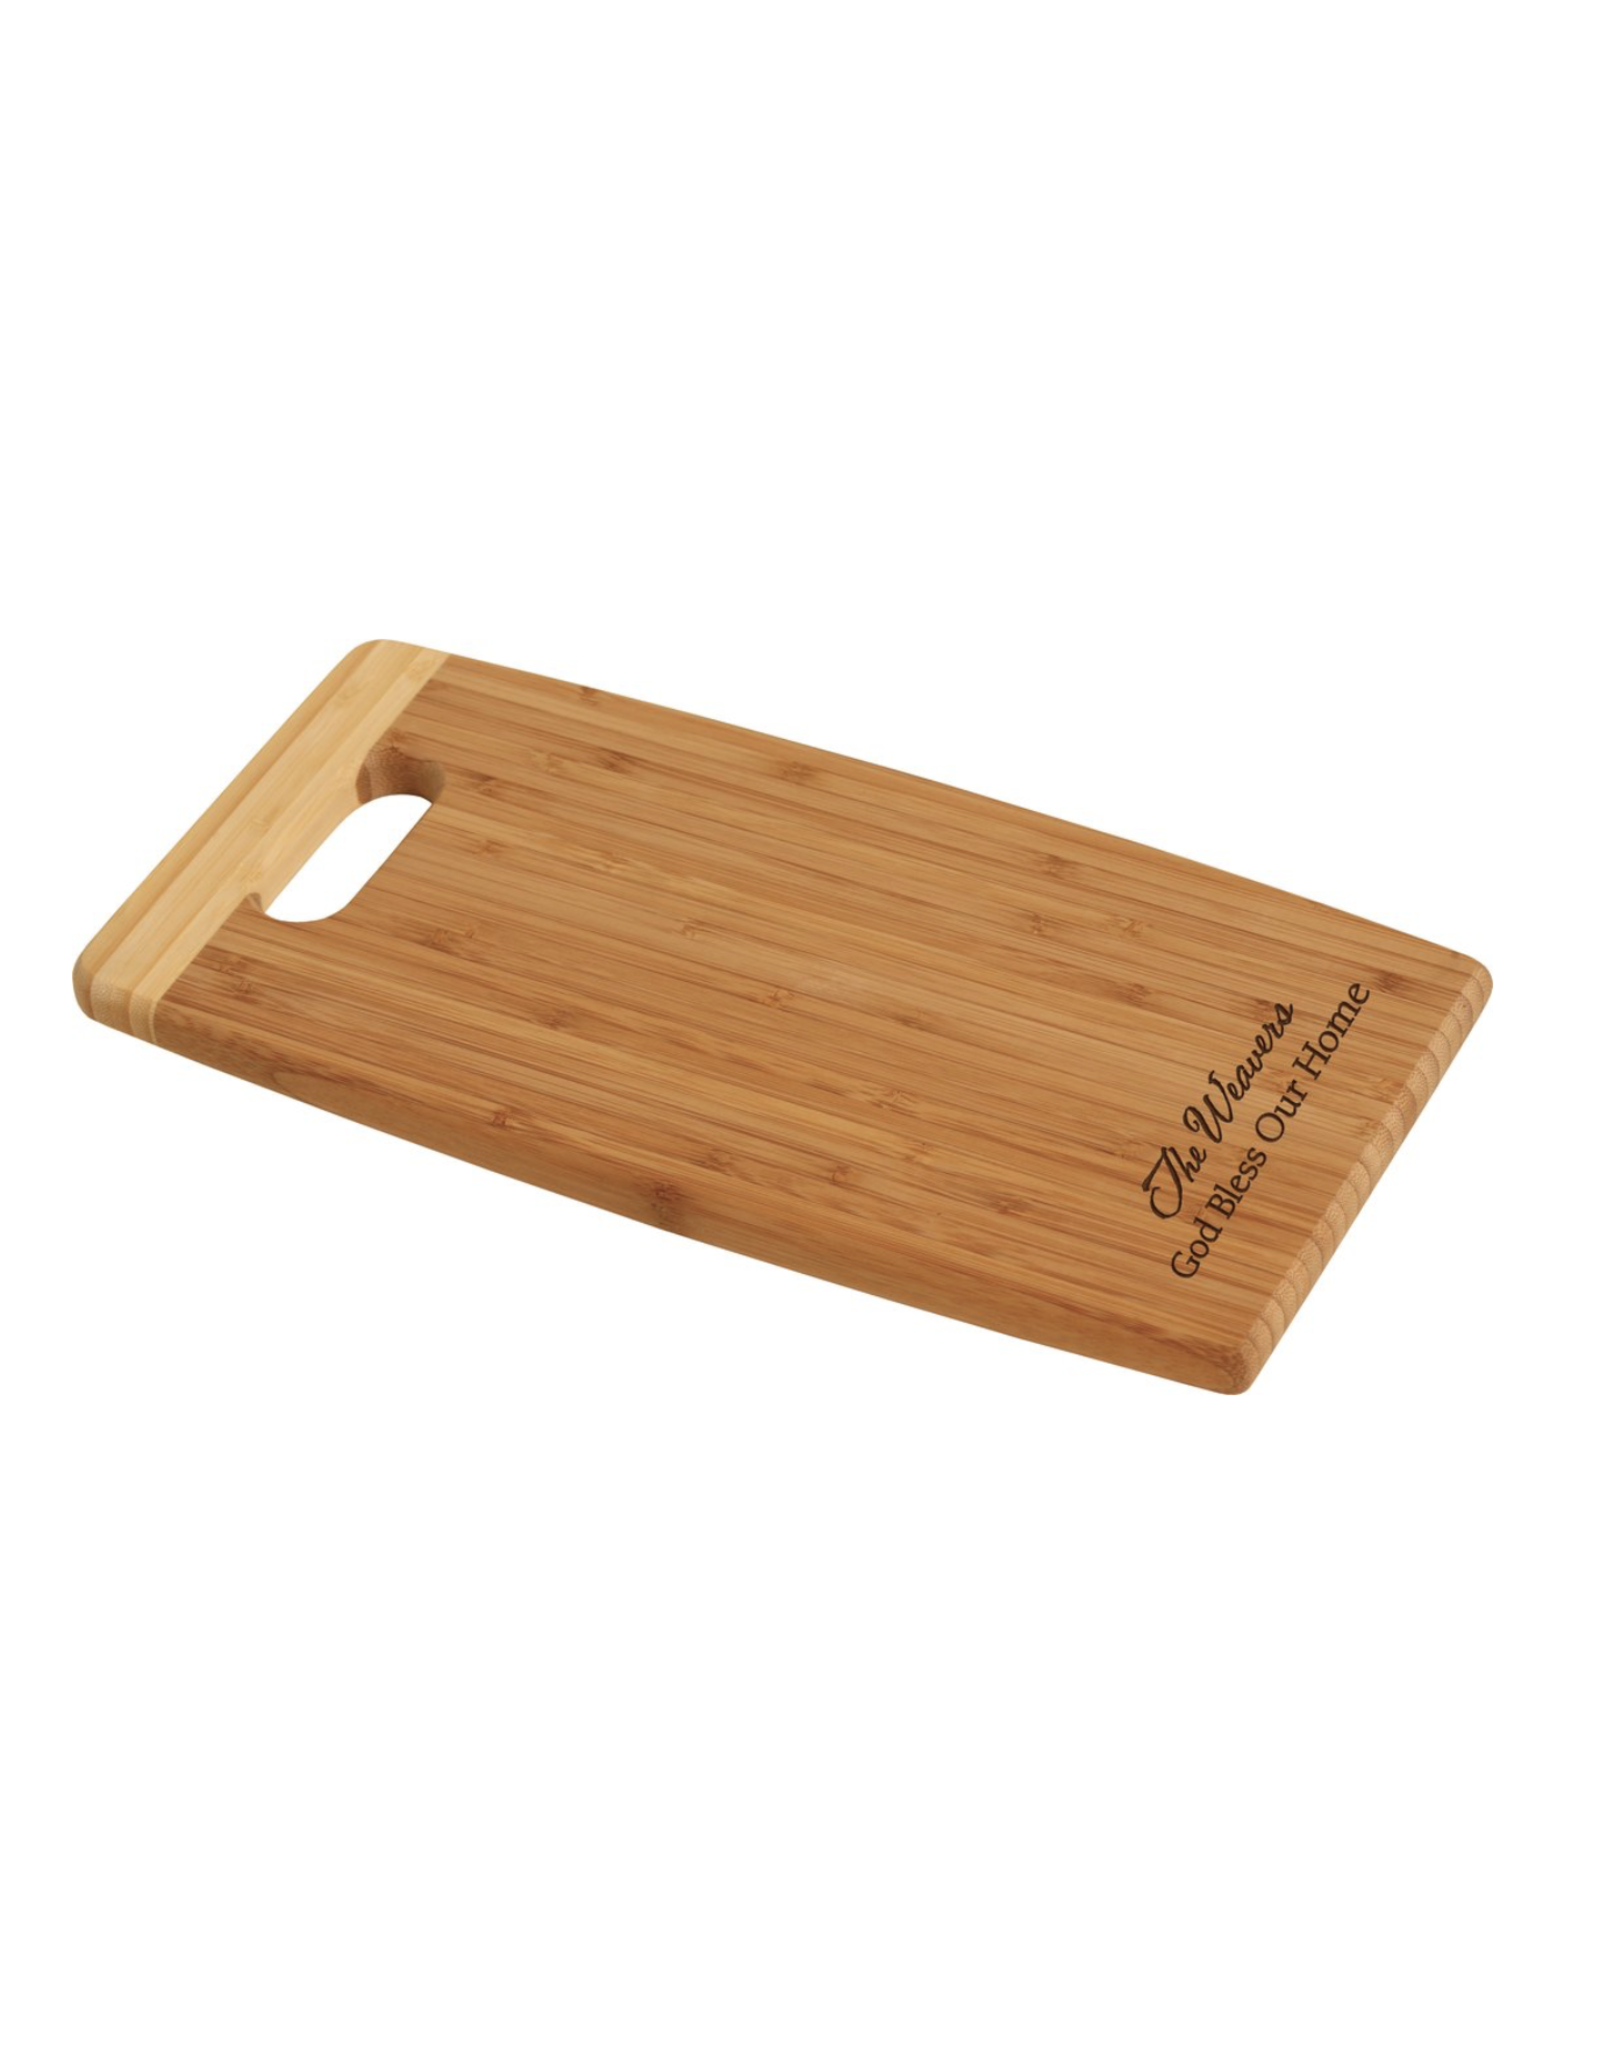 P Graham Dunn Bamboo Cutting Board Includes Laser Engraving